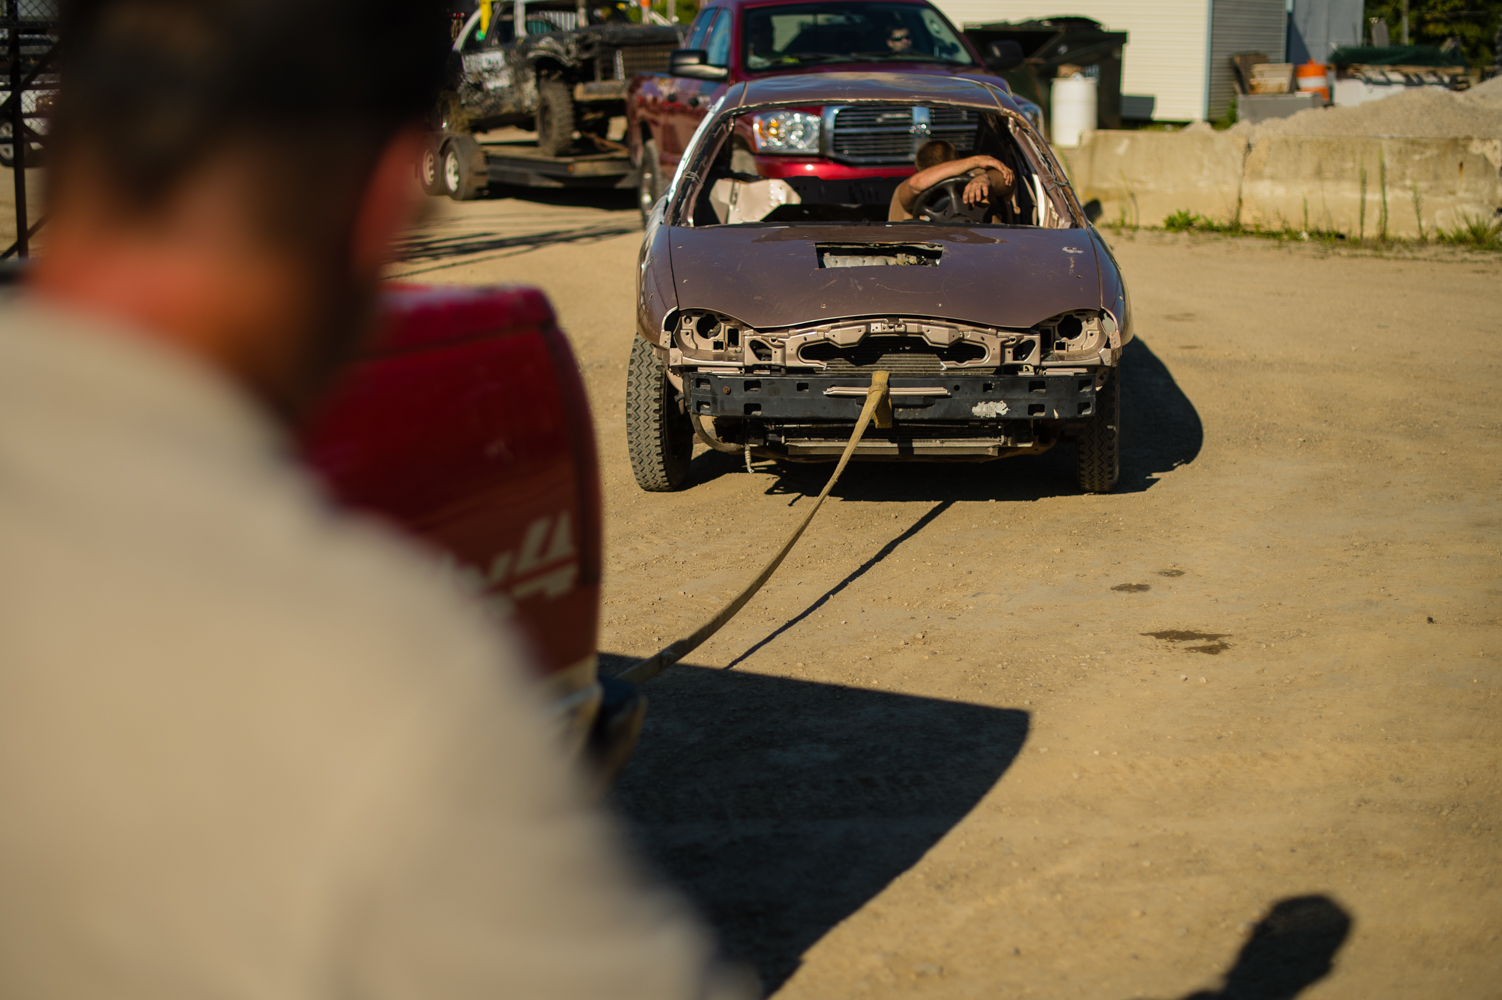 A derby contestant is towed into the inspection pit in New York.